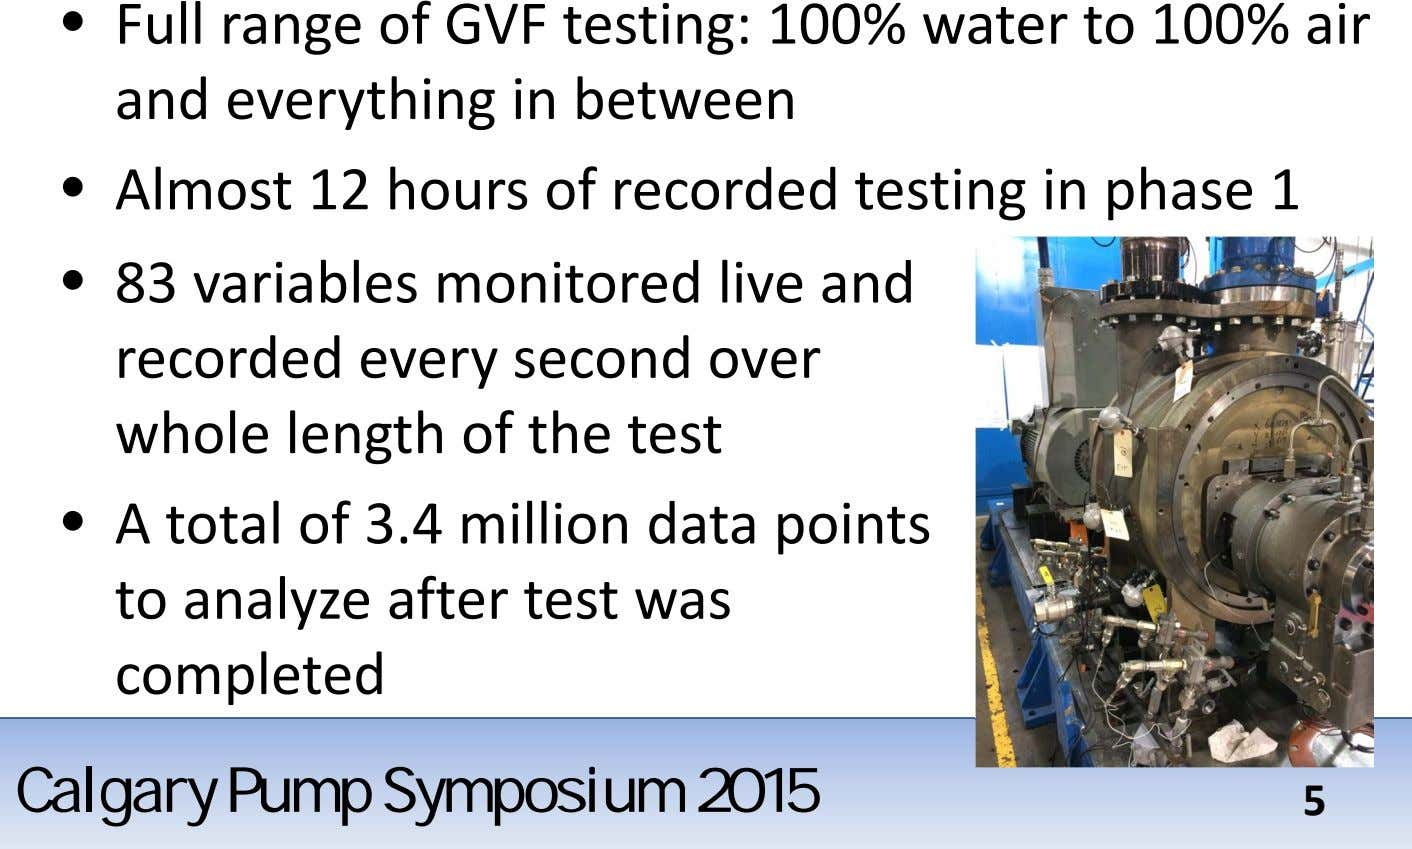 • Full range of GVF testing: 100% water to 100% air and everything in between